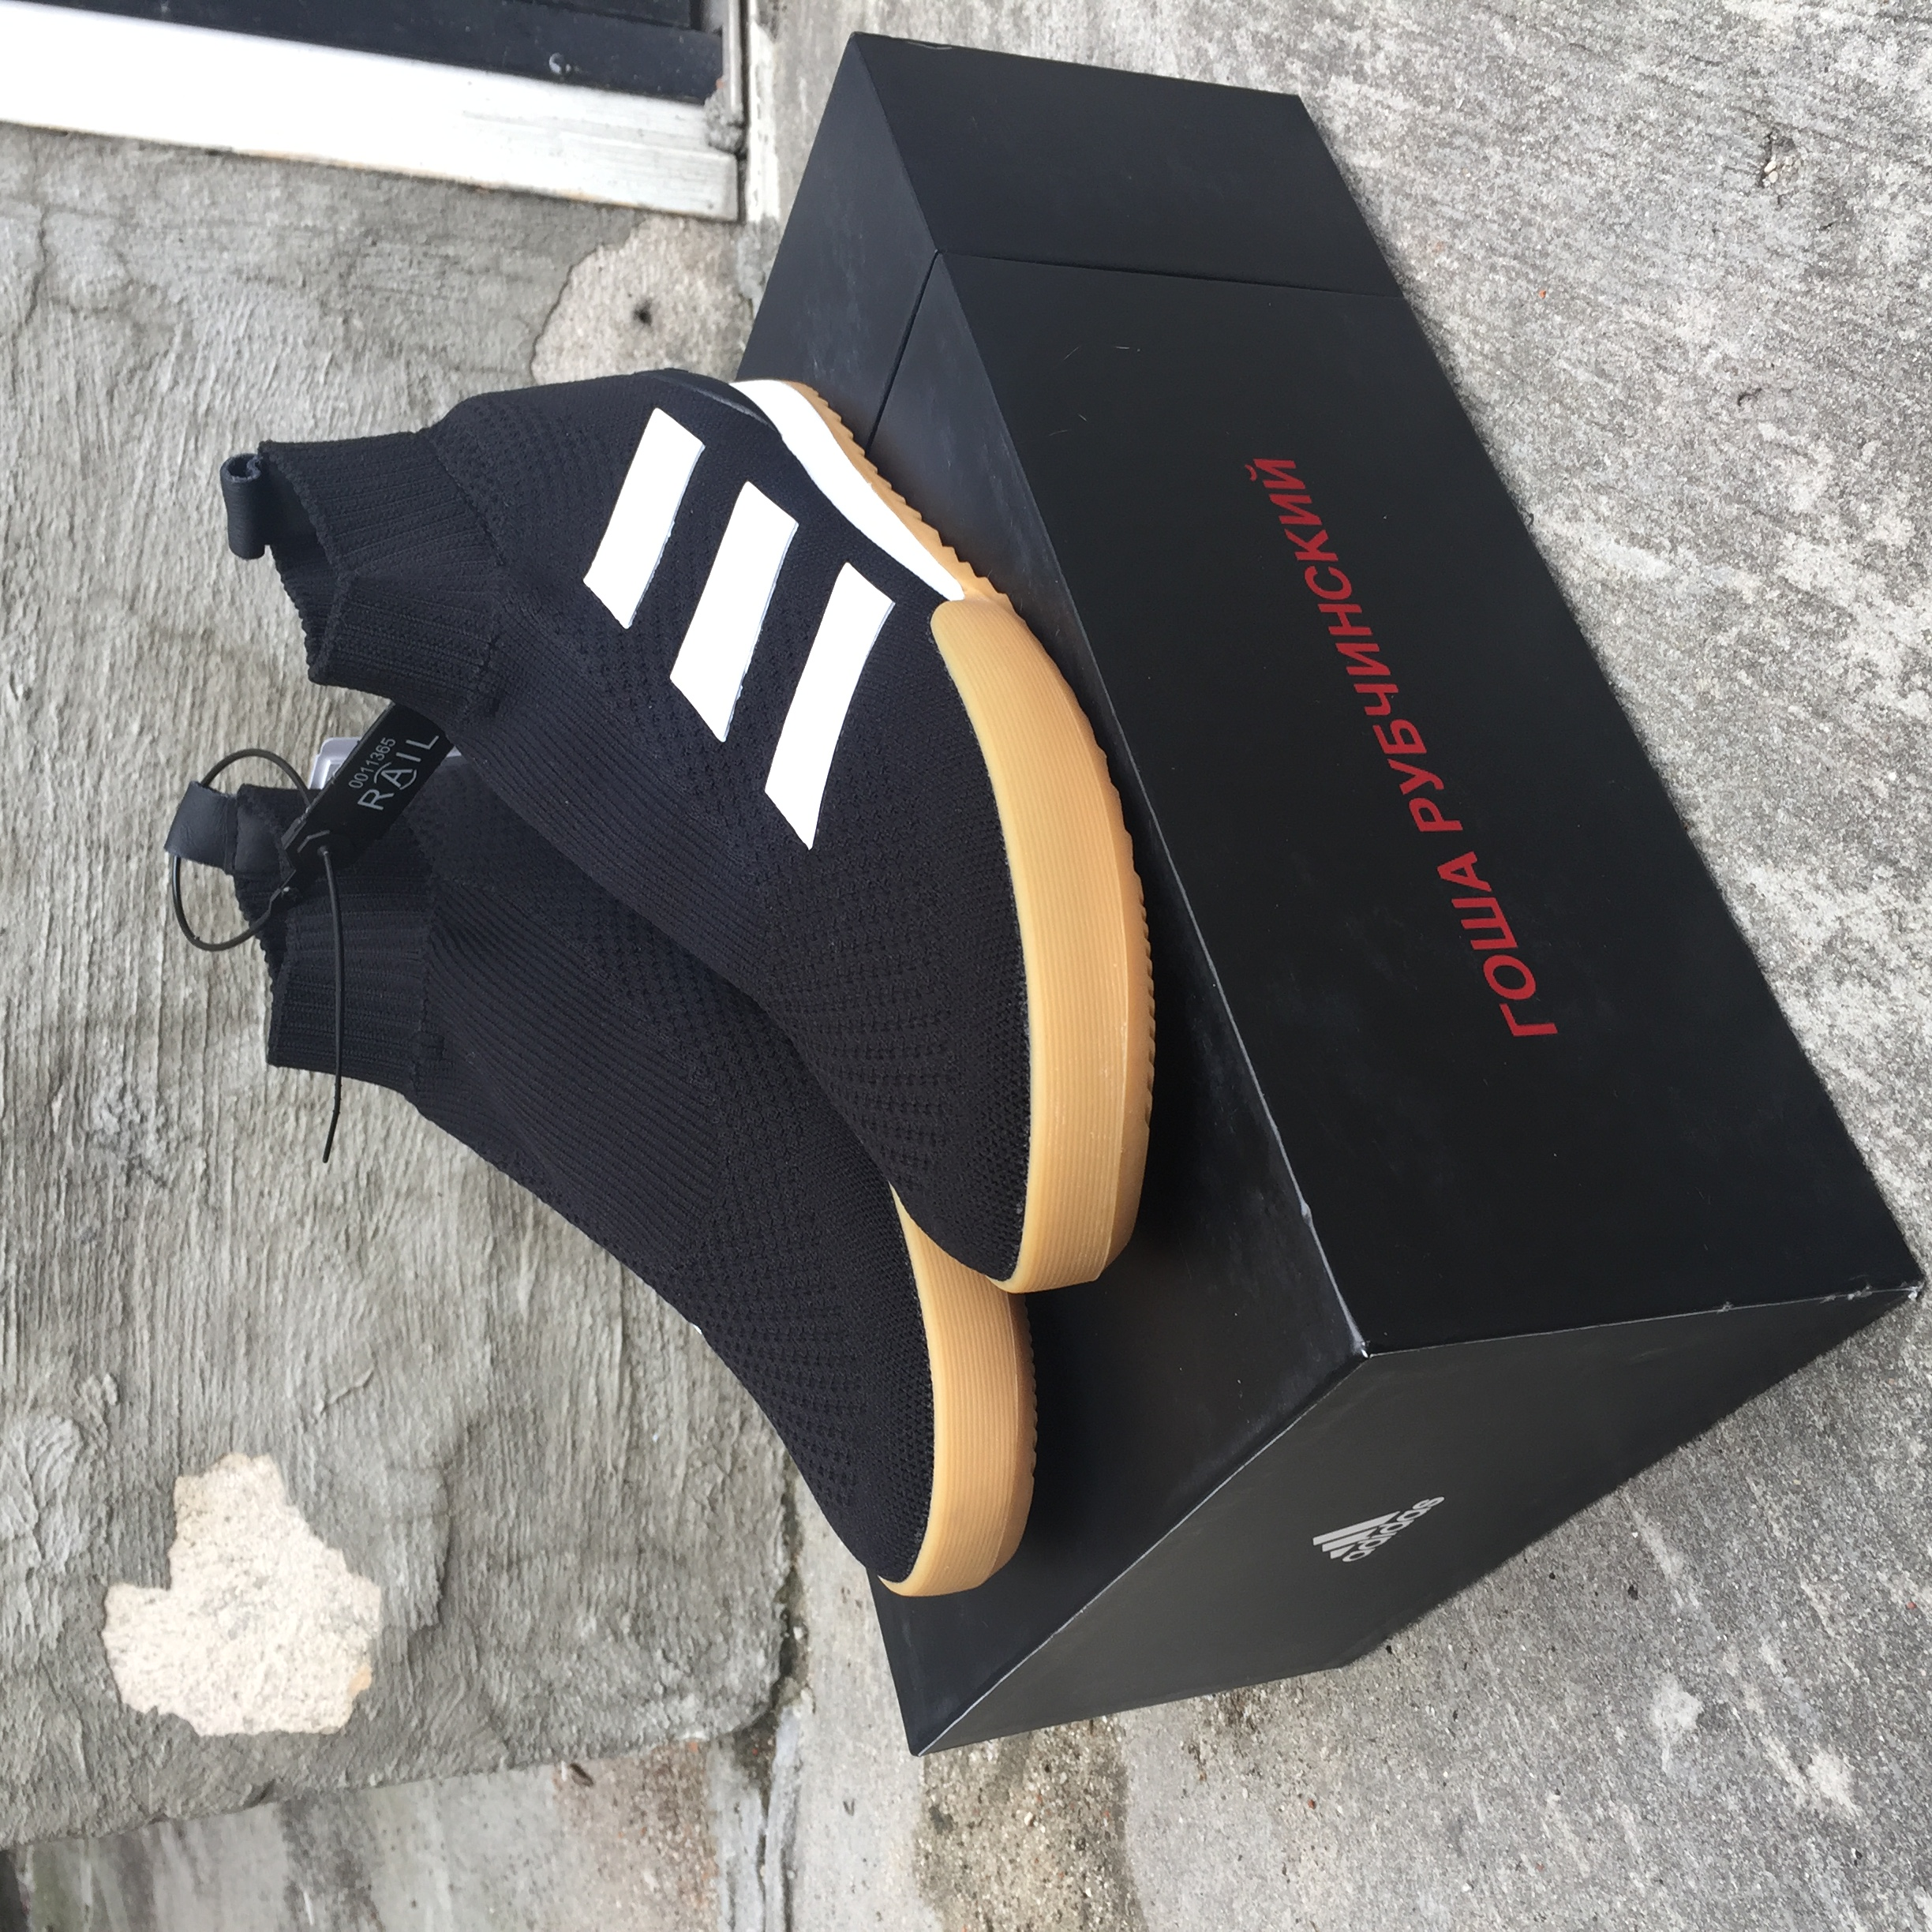 new products 80eed c7a9a Adidas Adidas Gosha Adidas Ace 16+ Super Black 9.5US Flyknit Size 9.5 -  Hi-Top Sneakers for Sale - Grailed